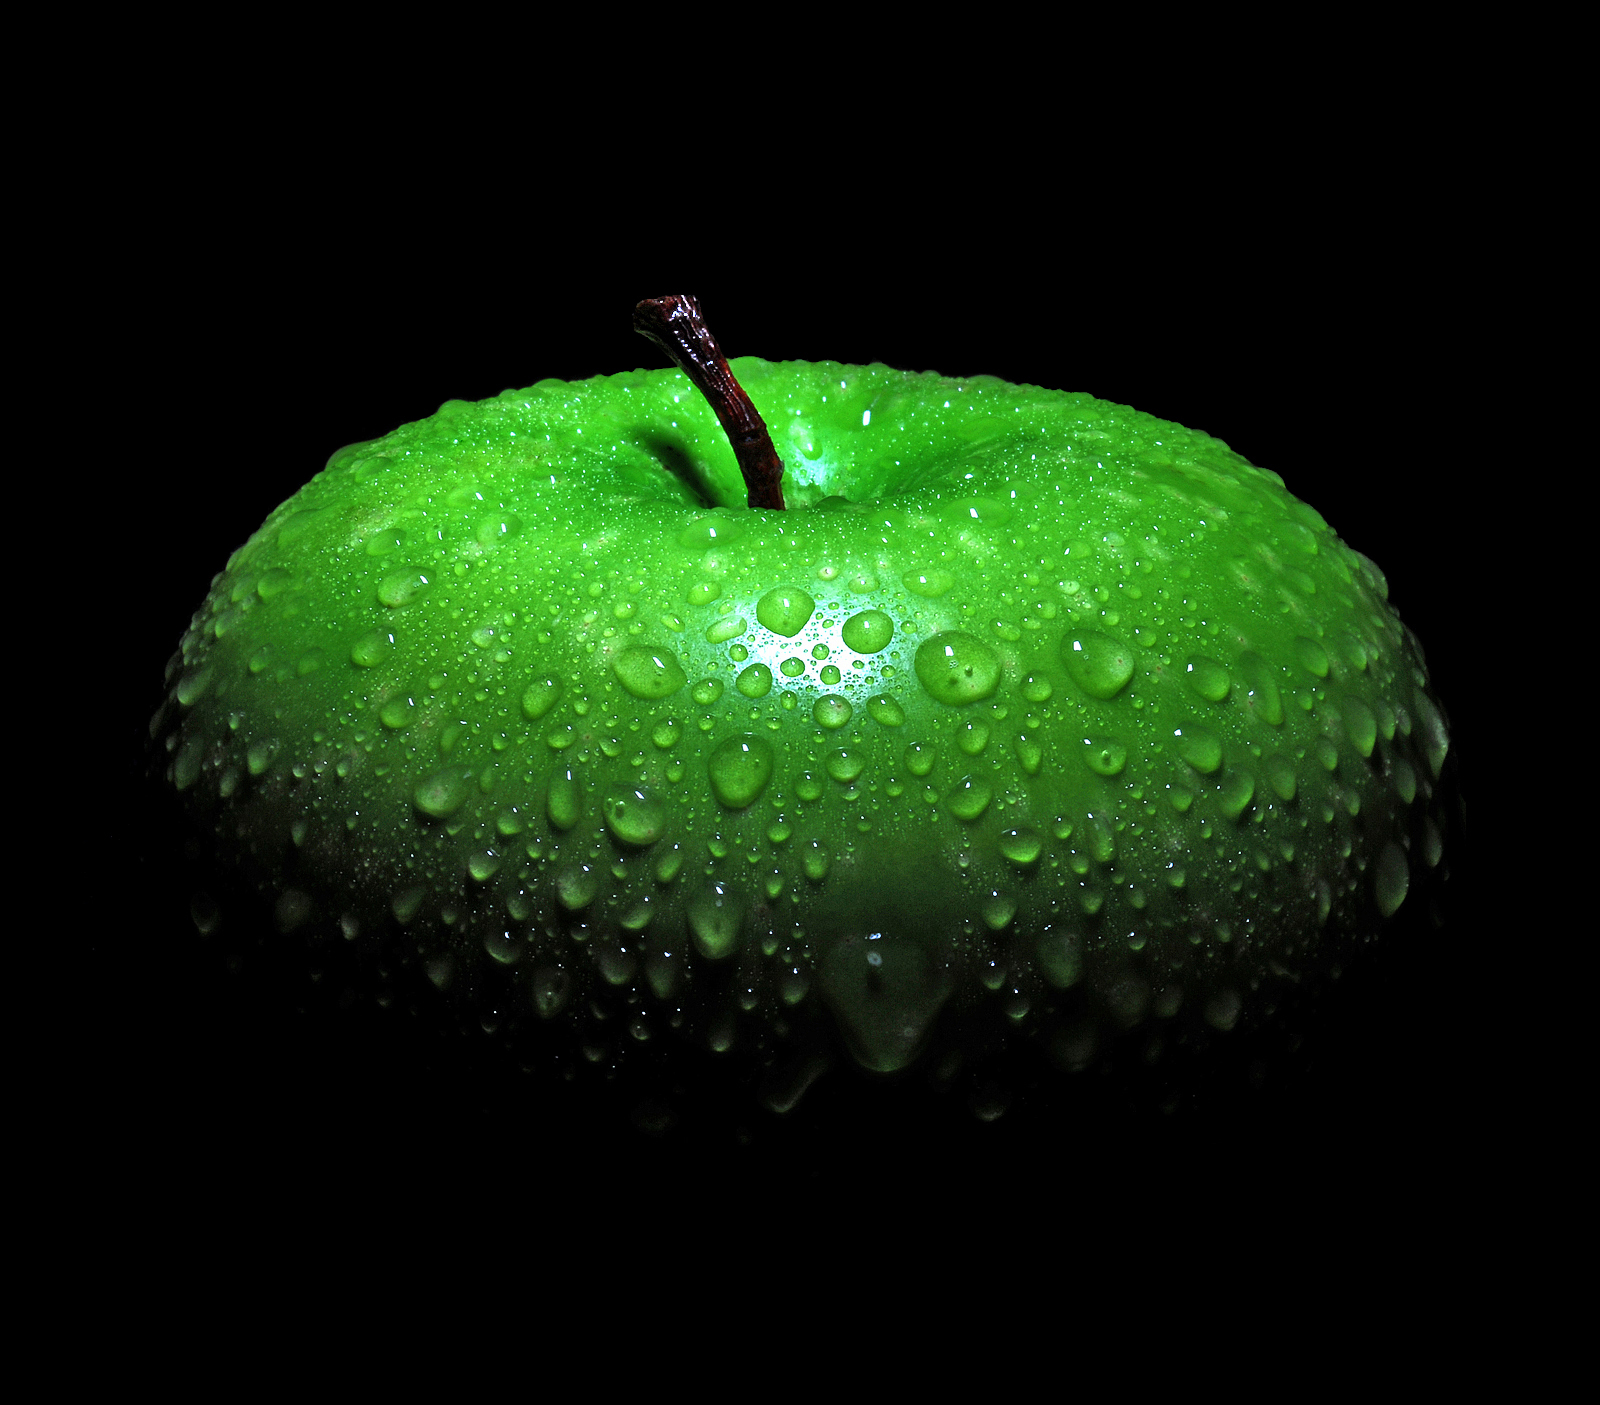 green apples black background HD Wallpaper